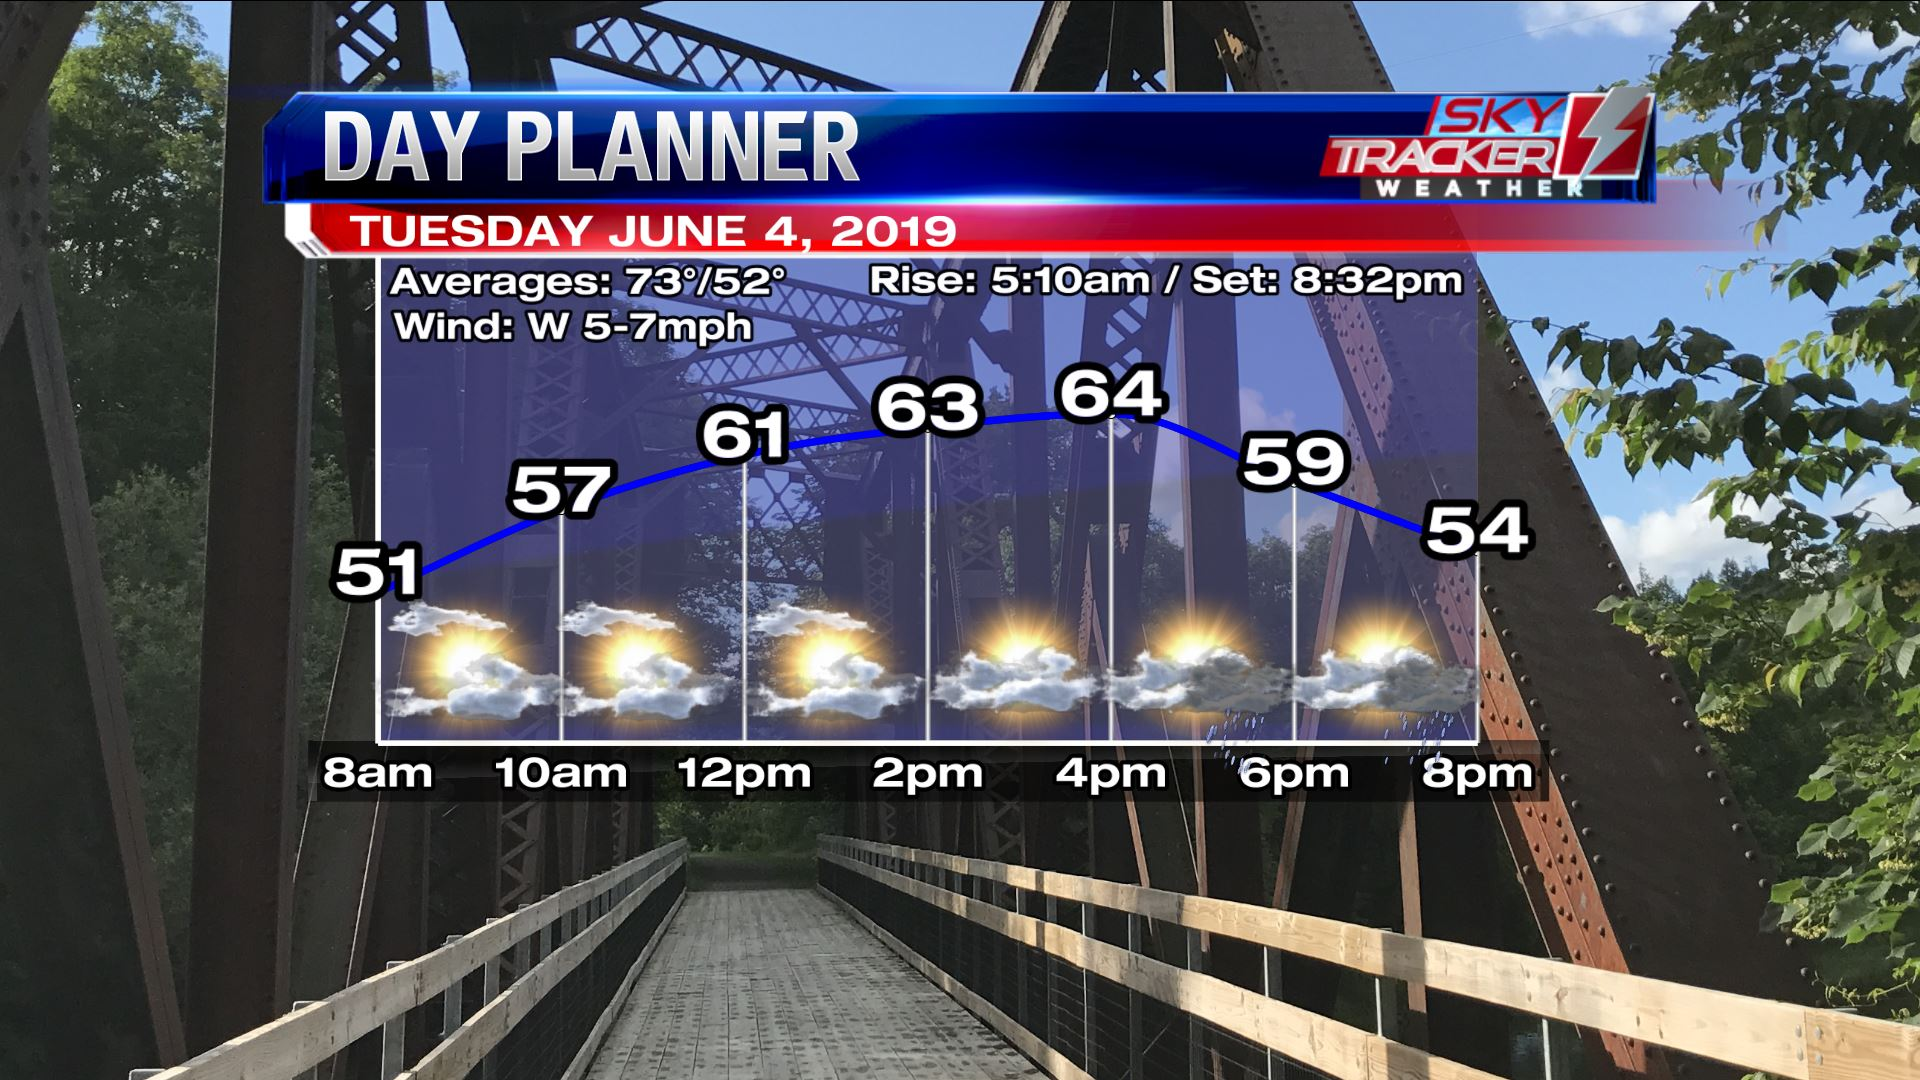 Planner for Tuesday June 4 2019